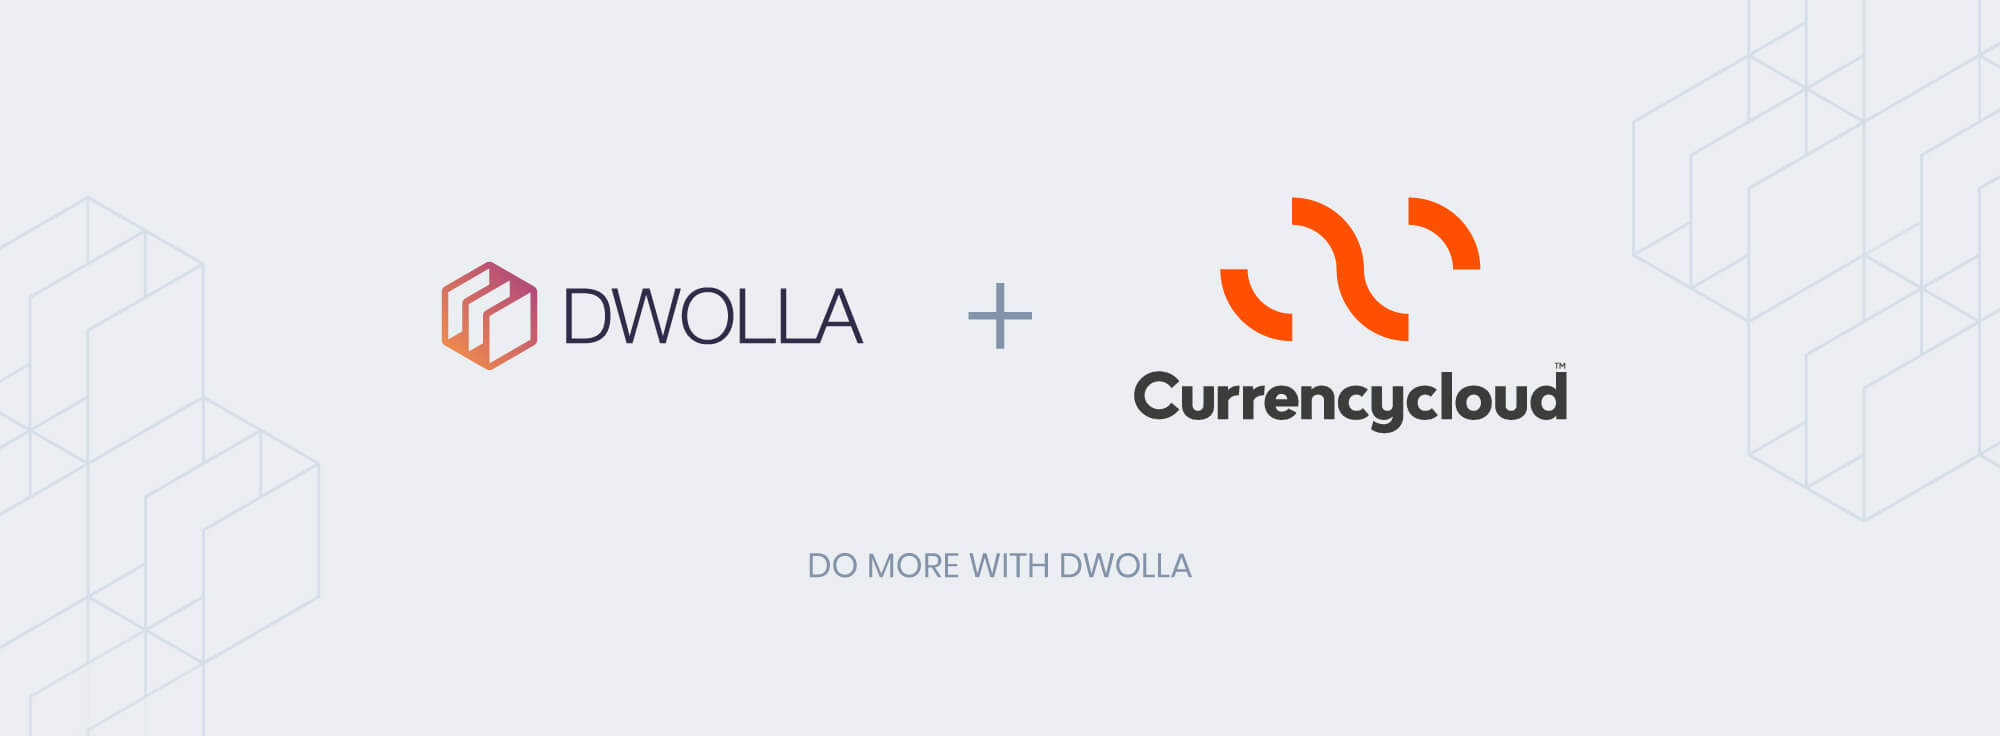 dwolla=currencycloud